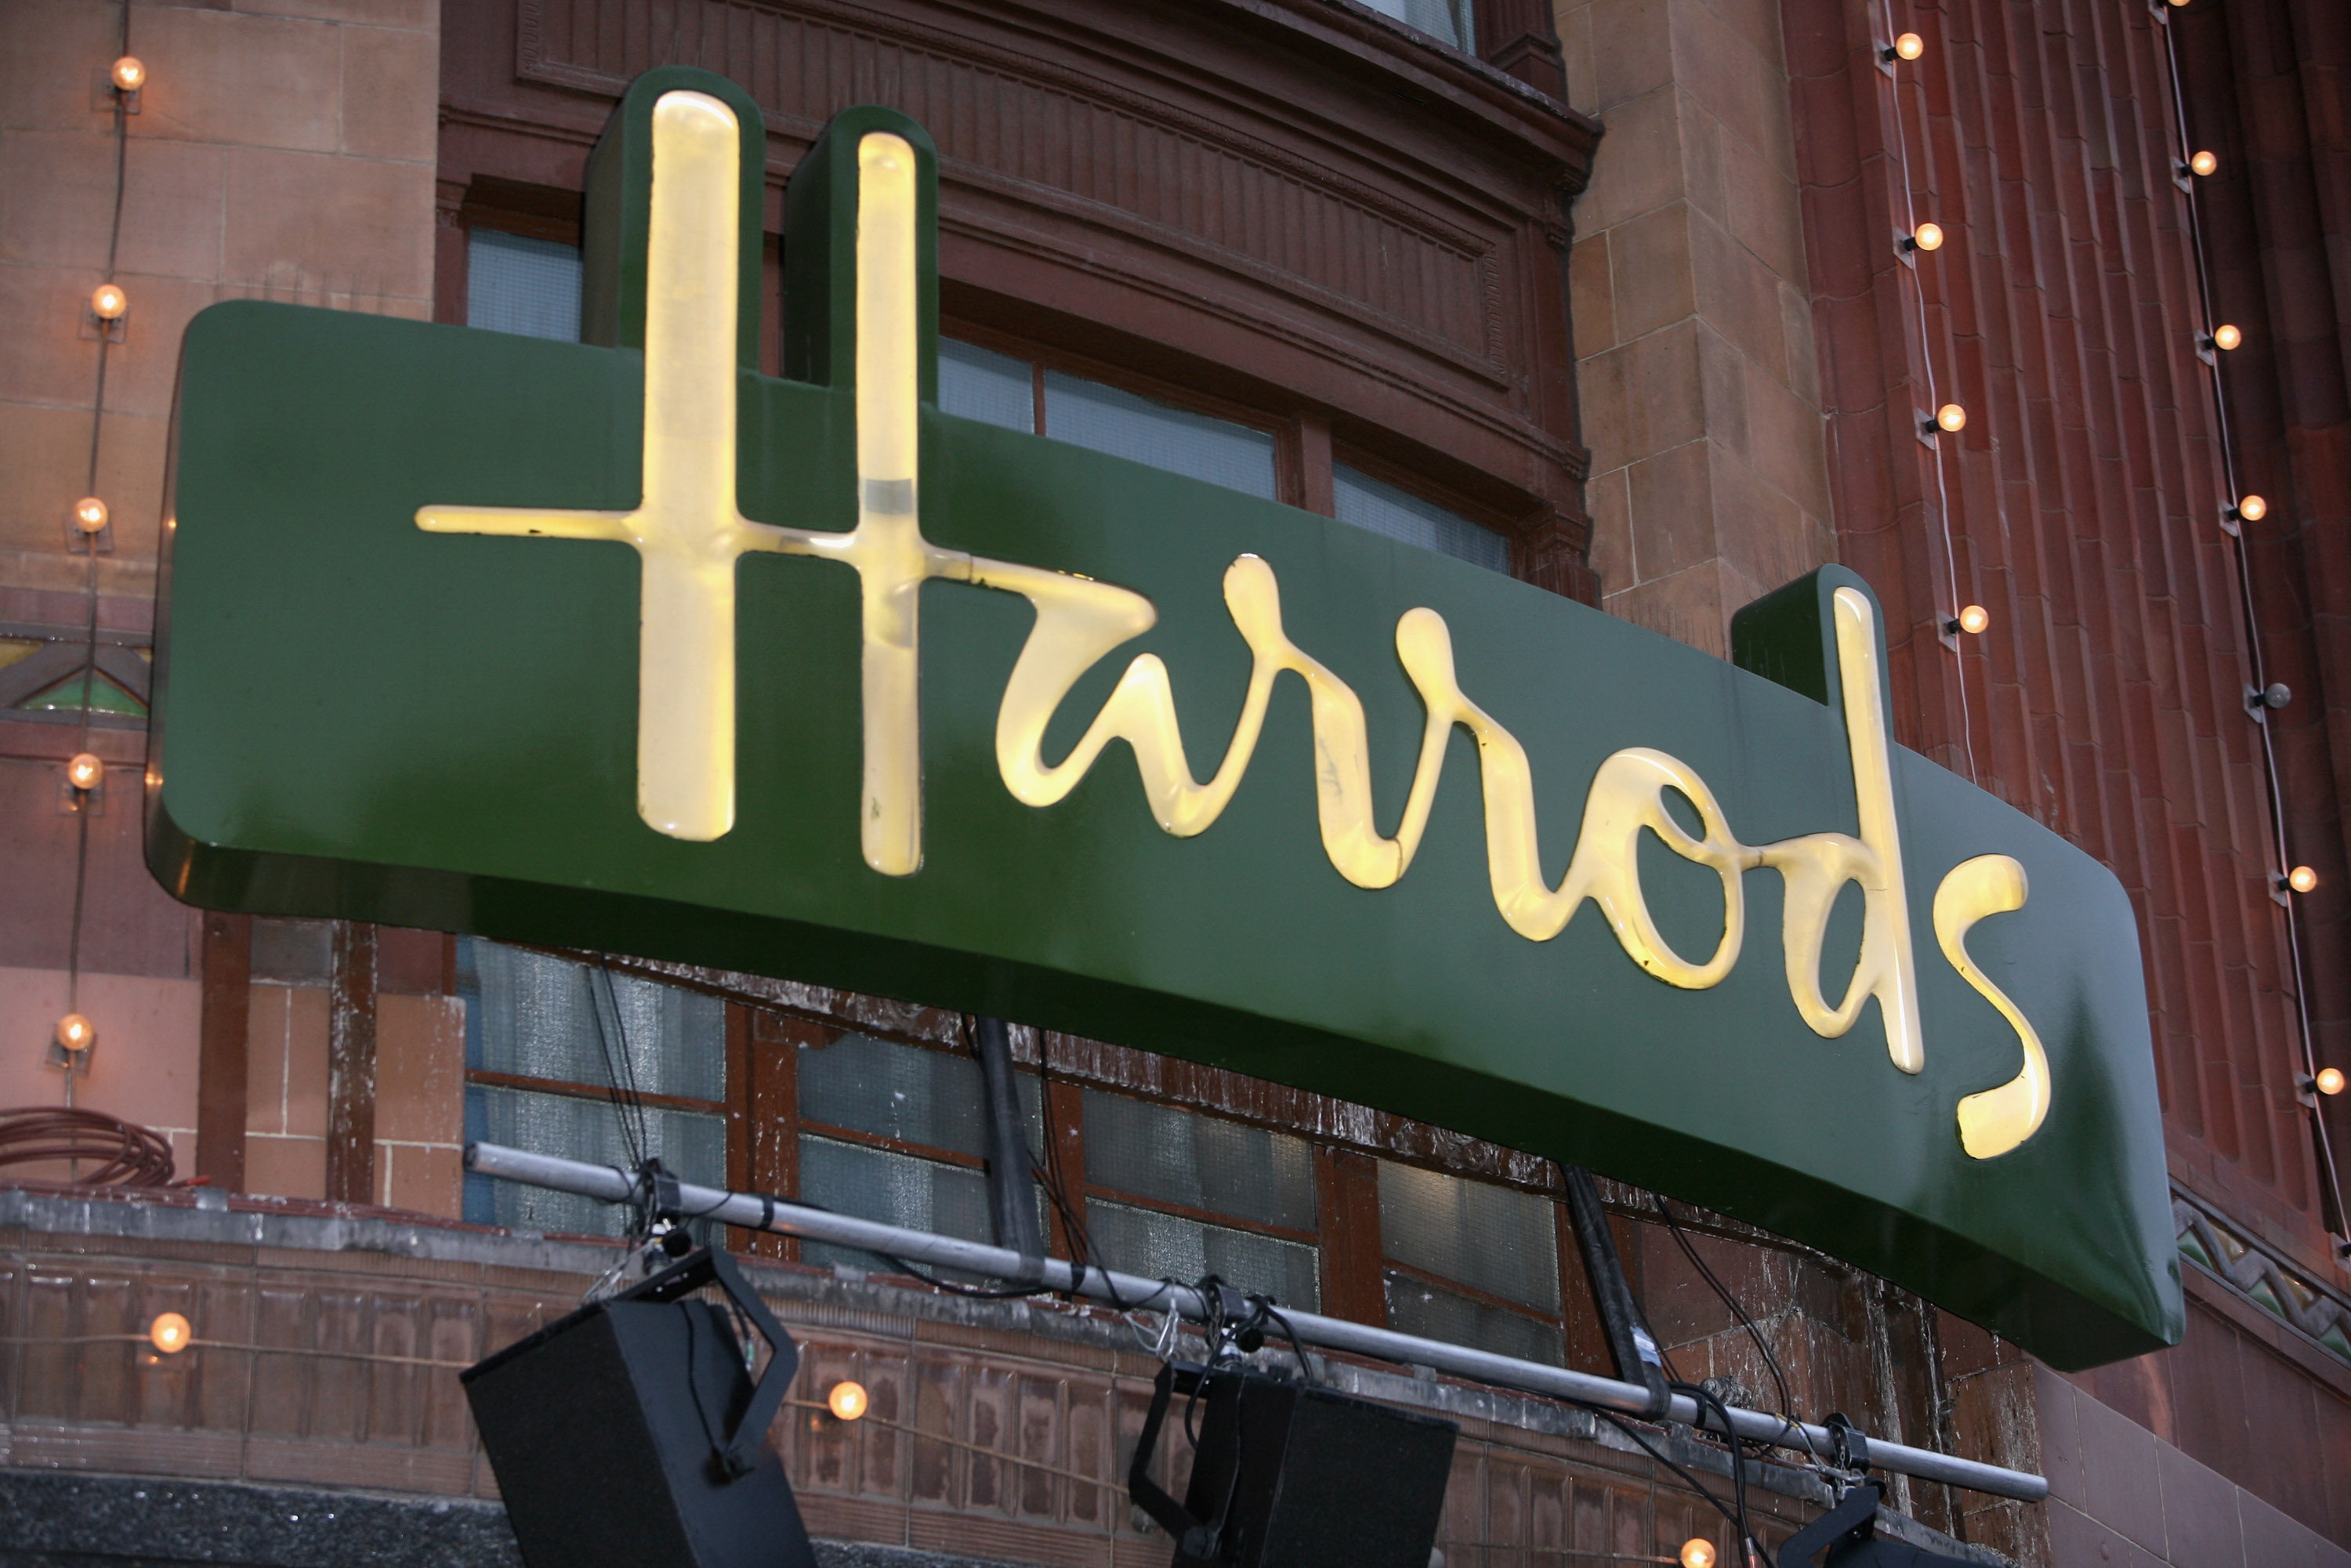 LONDON - NOVEMBER 01:  The Harrods sign is illuminated during the Christmas Parade to celebrate the opening of Santas Grotto at Harrods on November 1, 2008 in London, England.  (Photo by Tim Whitby/Getty Images)